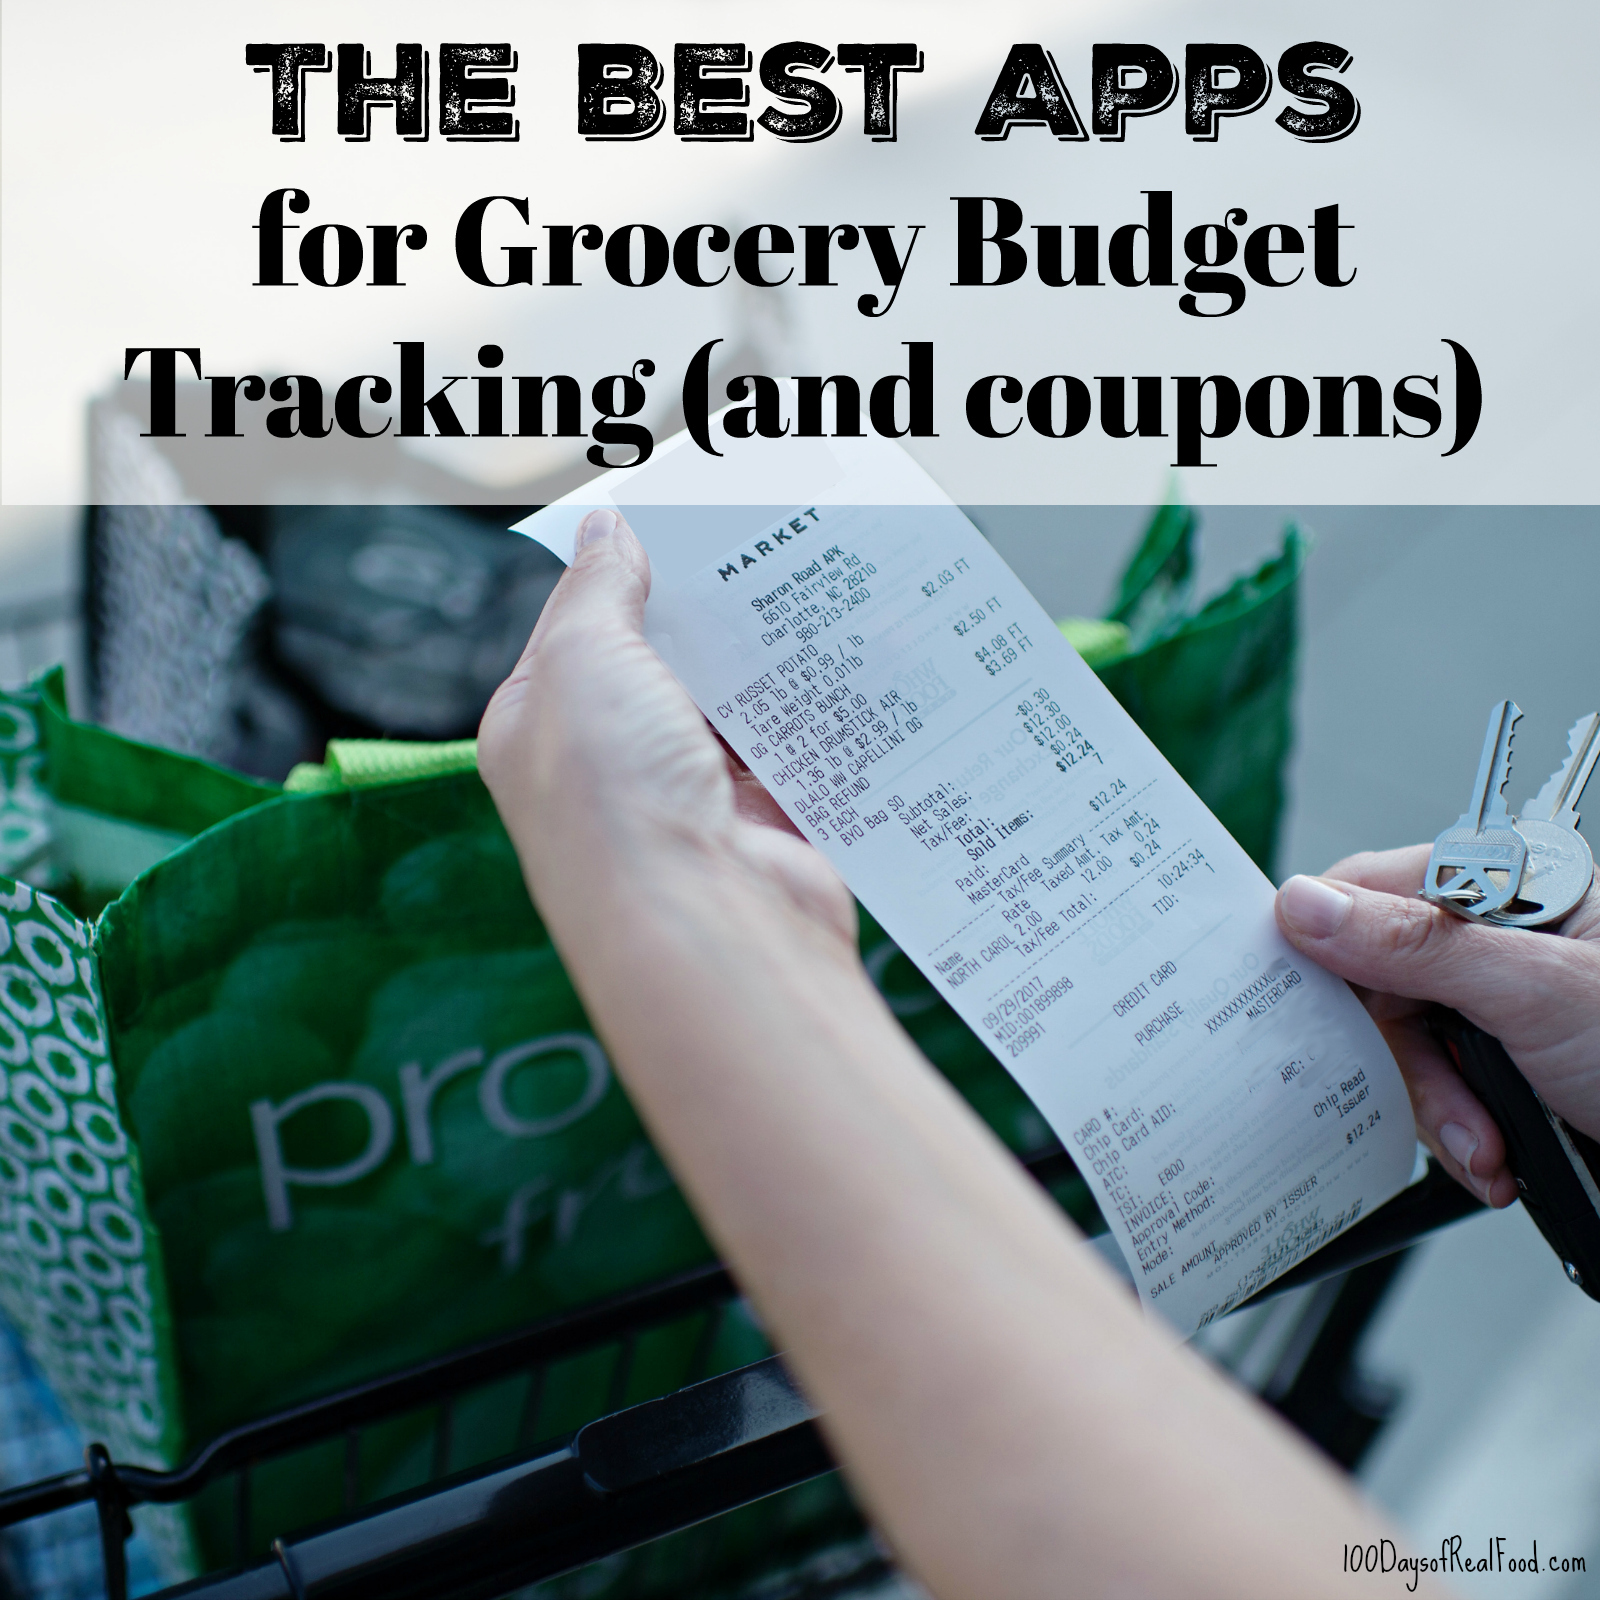 The Best Apps for Grocery Budget Tracking (and coupons)